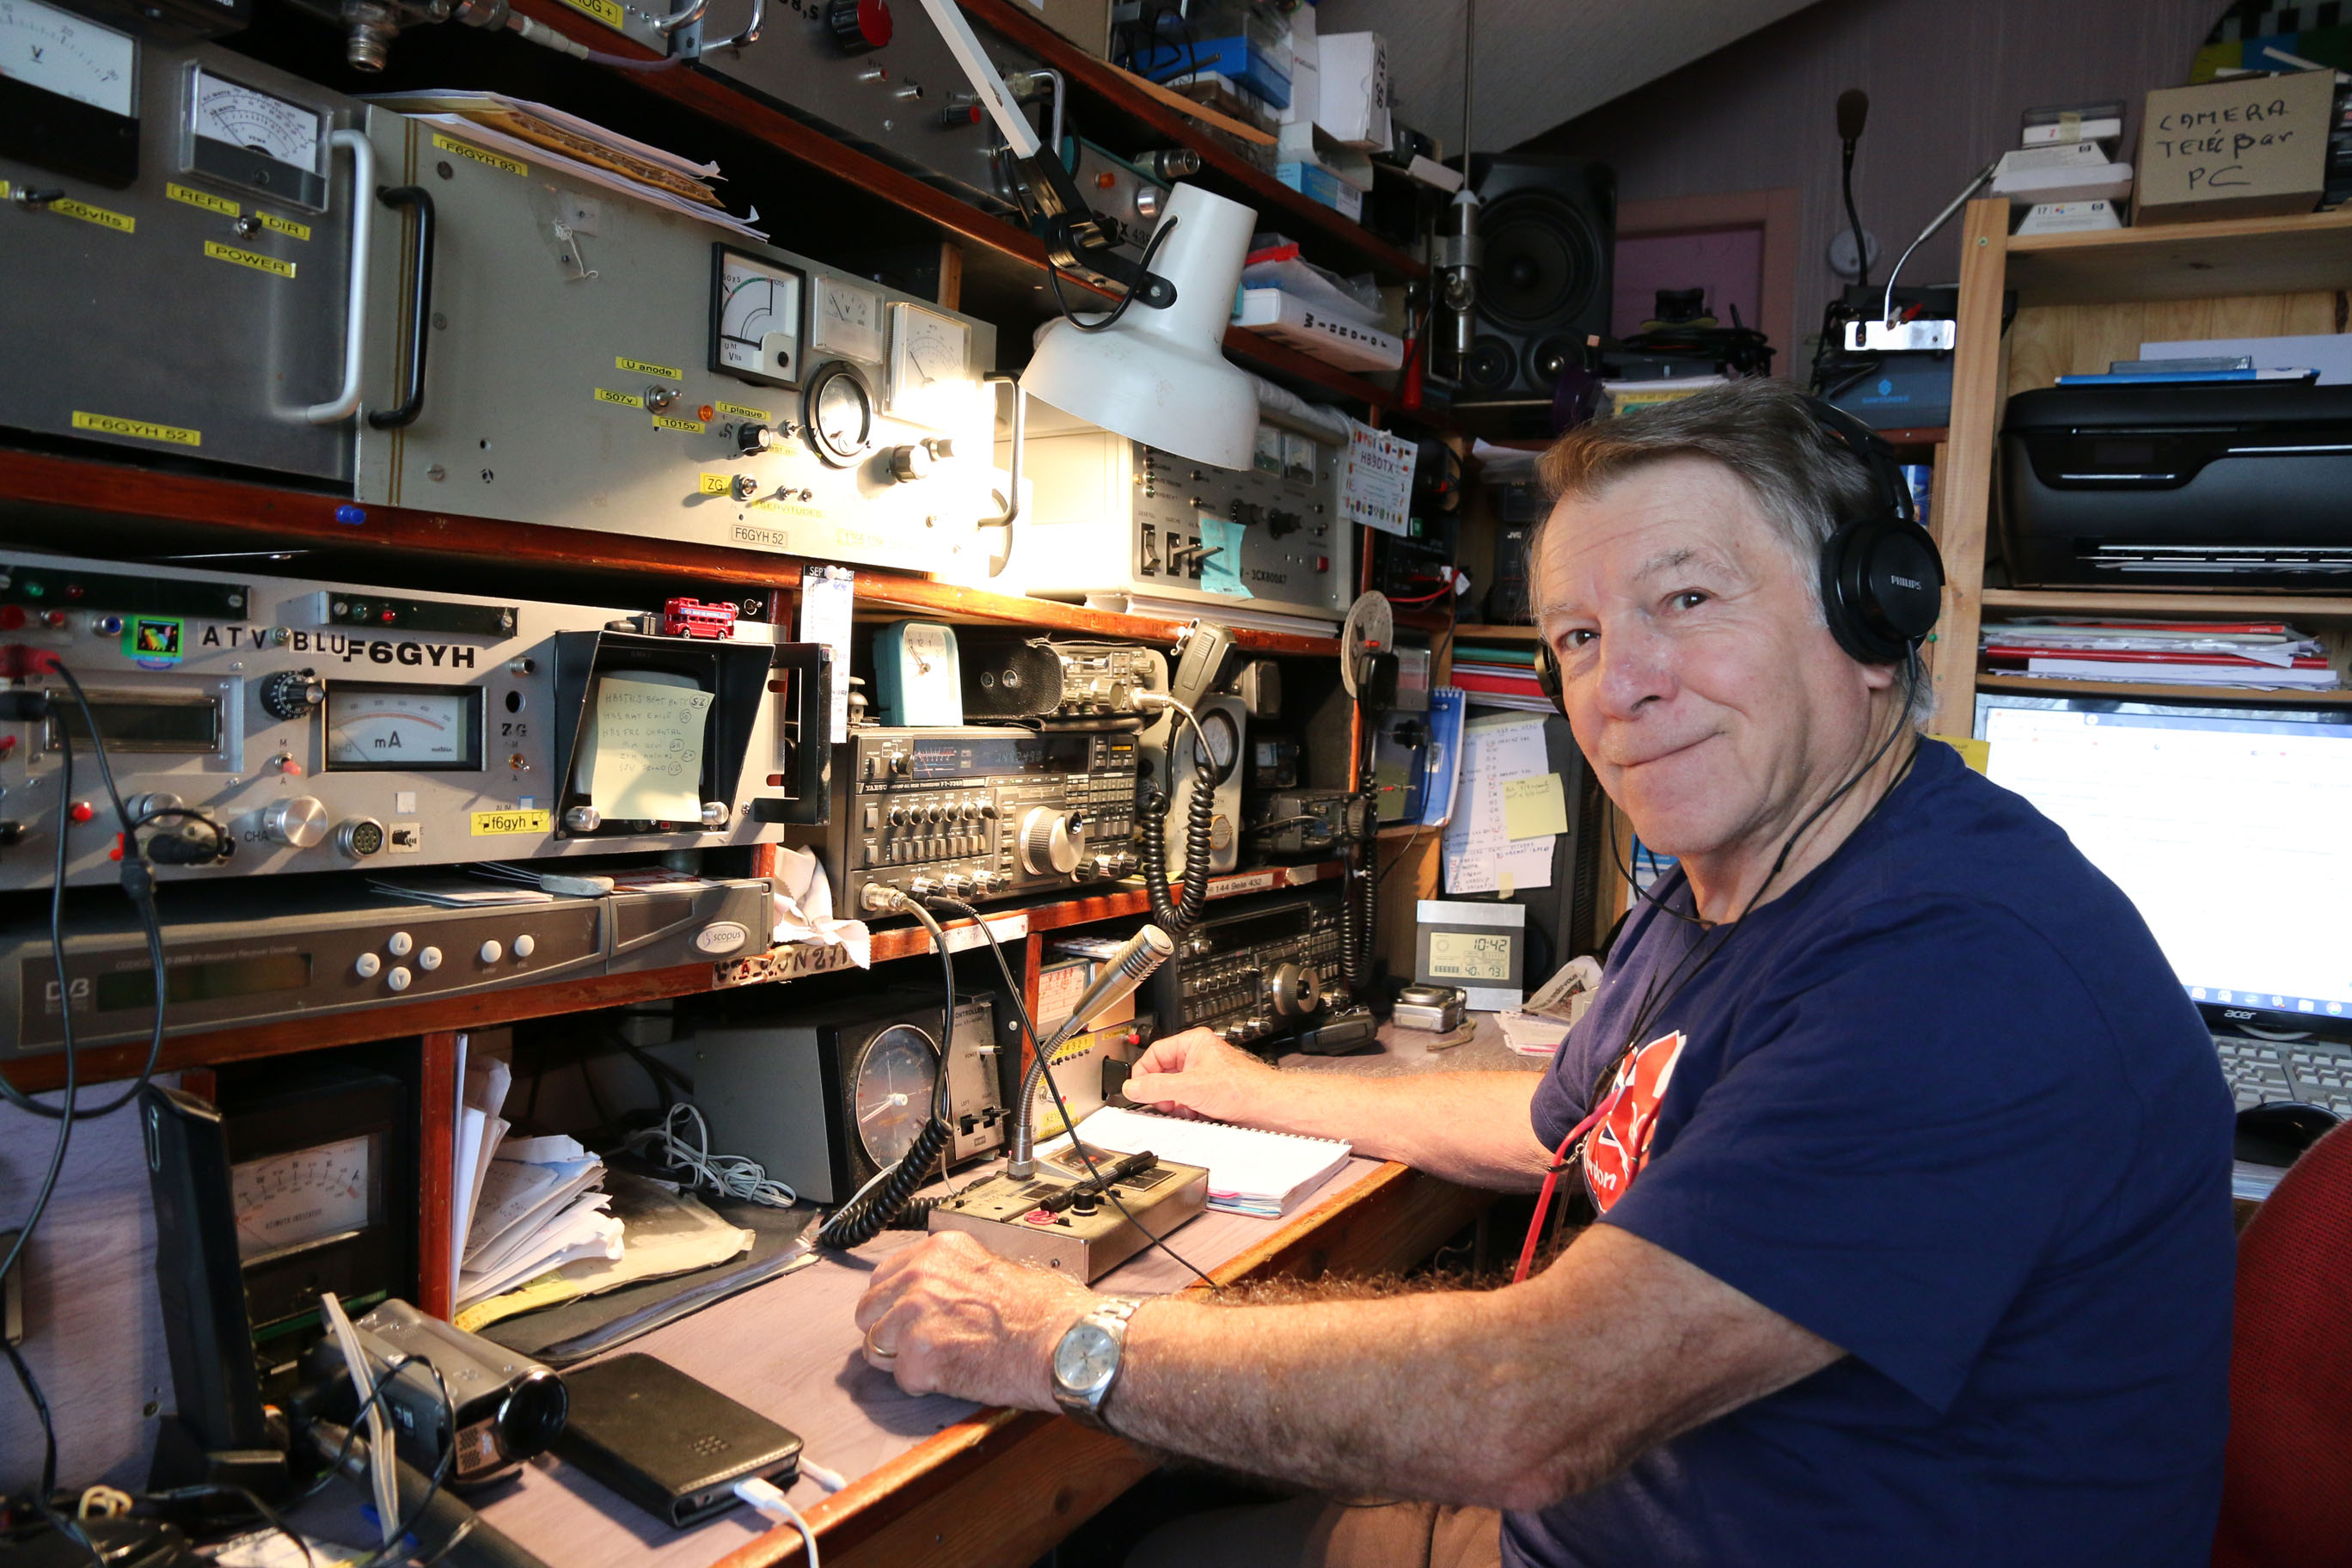 F6GYH at his station - 2019